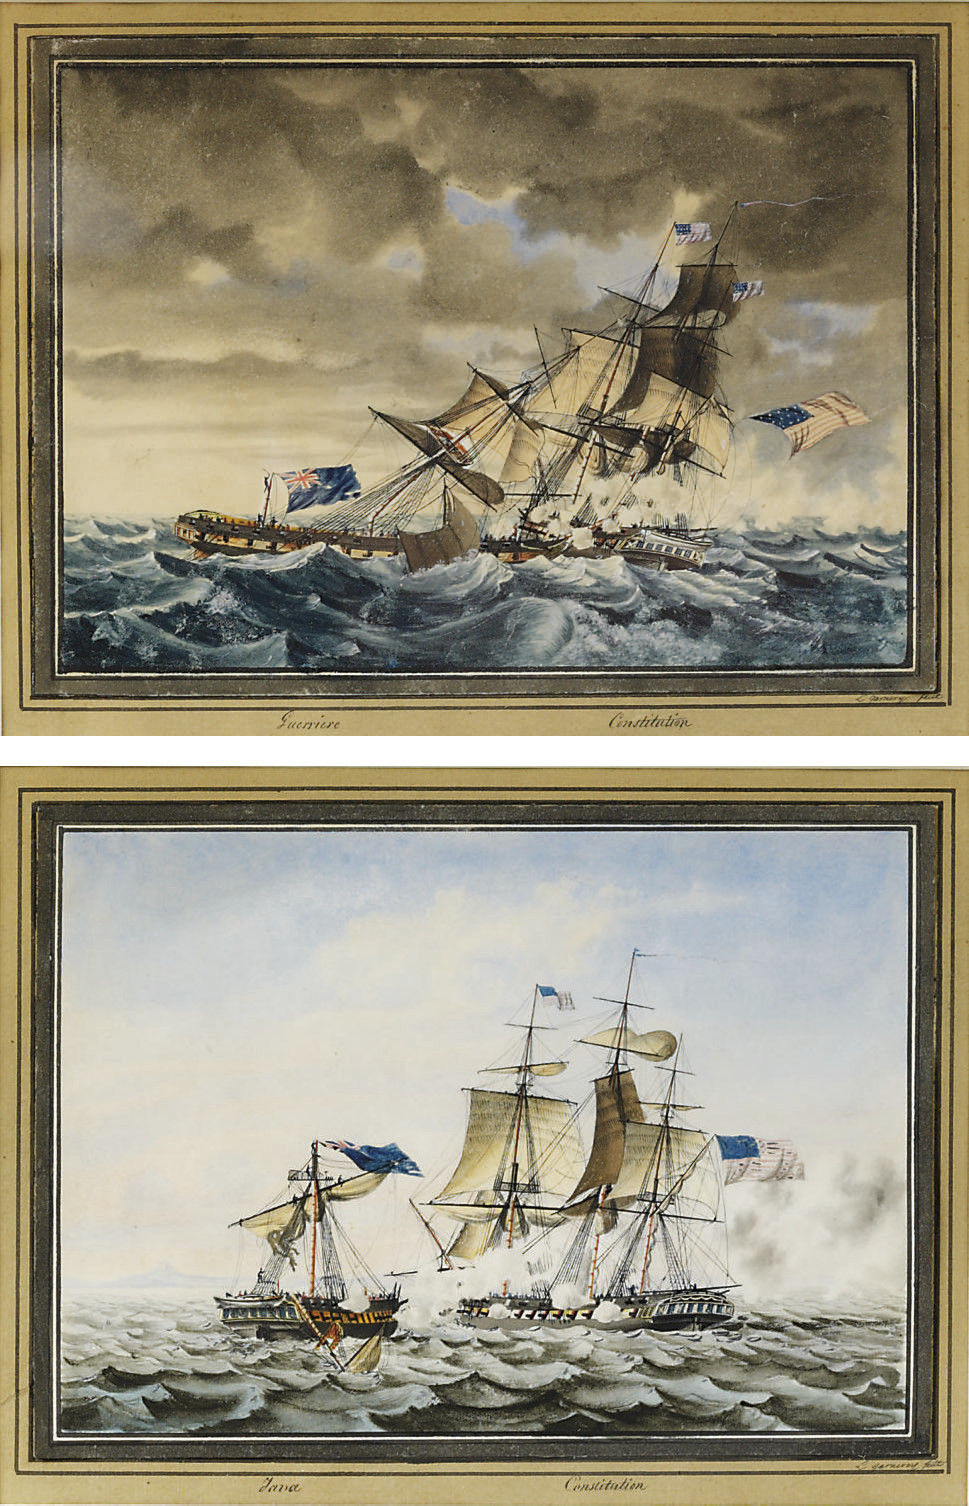 The end of the action between U.S.S.Constitution and the British frigate Guerriere; and U.S.S.Constitution engaging the British frigate Java off the coast of Brazil